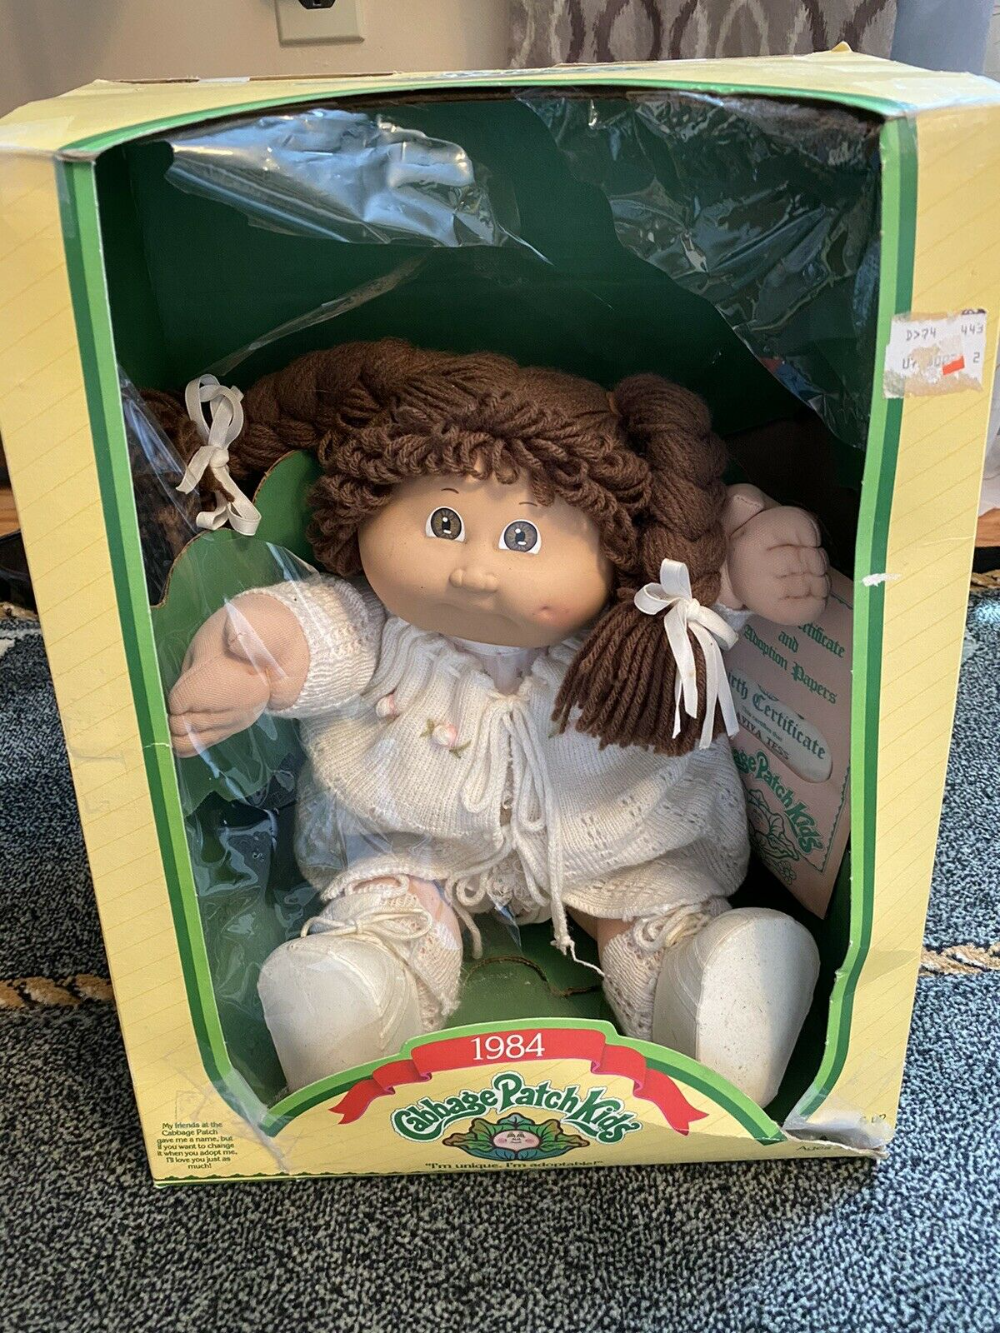 1984 Cabbage Patch Kids Doll Coleco With Birth Certificate Original Box Aviva Tess Cabbage Patch Babies Cabbage Patch Dolls Cabbage Patch Kids Dolls